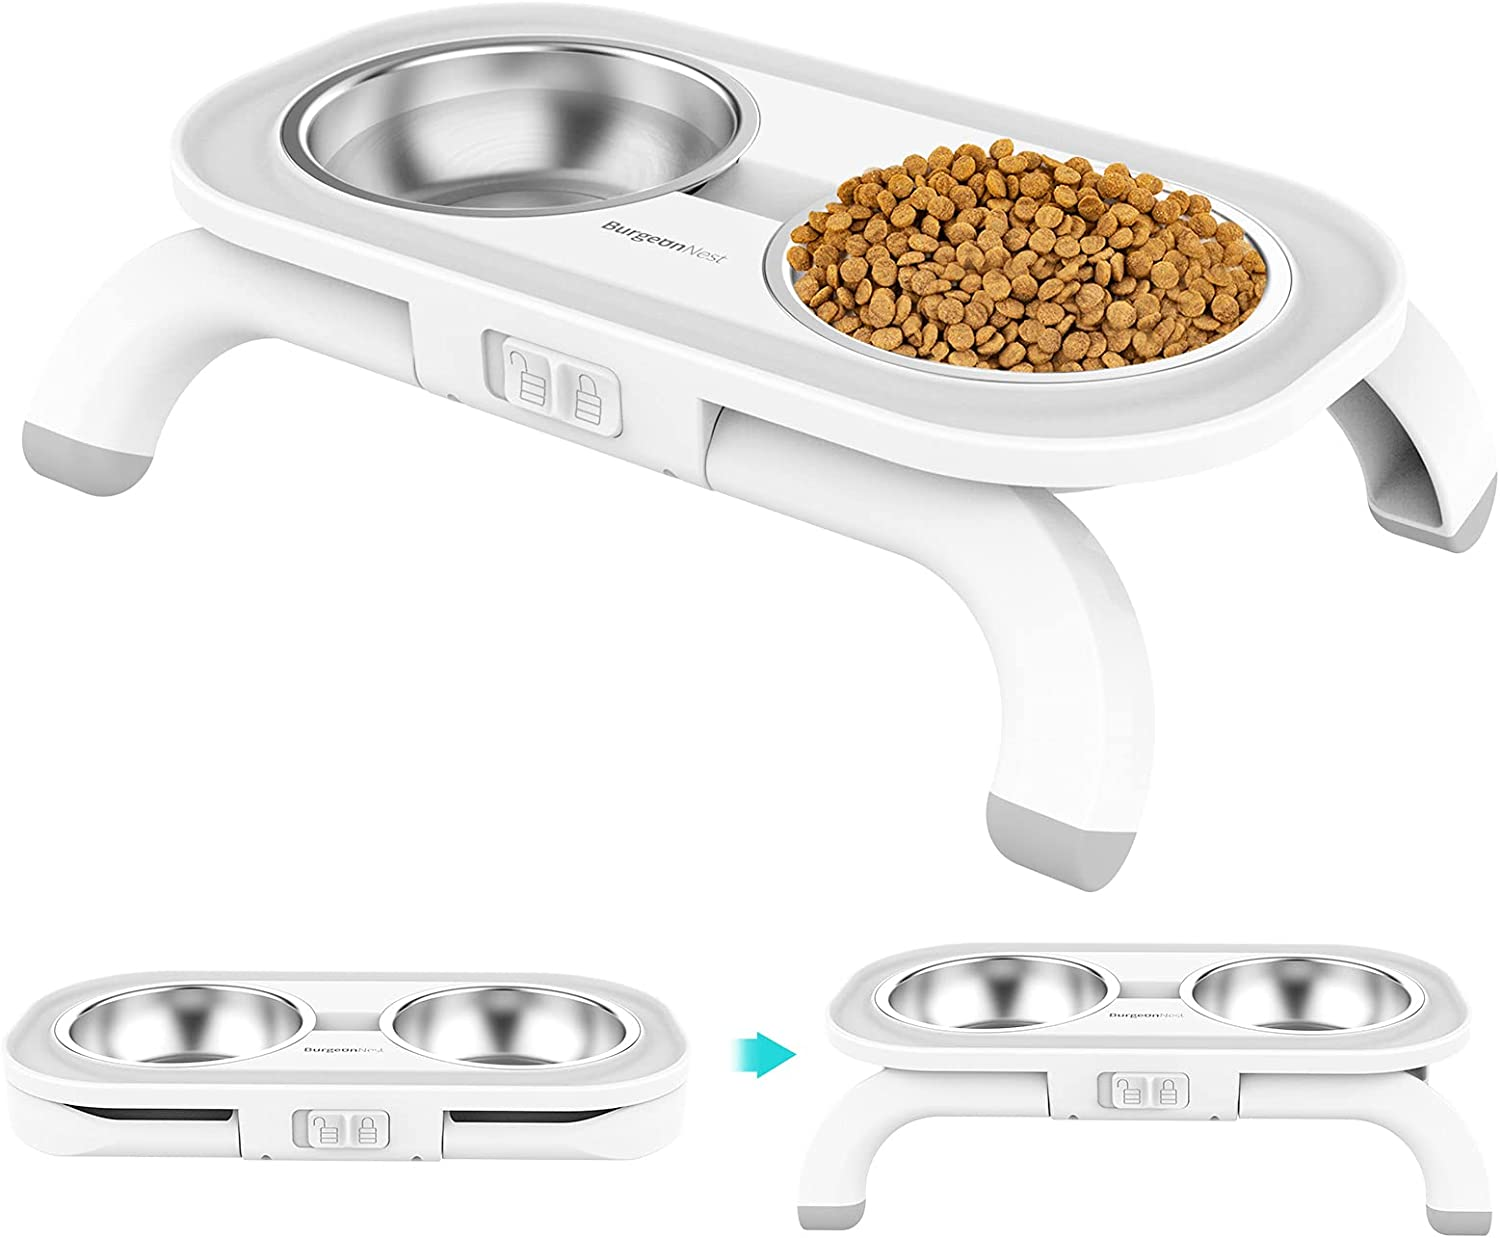 BurgeonNest Kitten Elevated Food Water Bowl Set, 15°Tilted Raised Cat Dishes with Stand for Indoor Cats Puppy, Stainless Steel Pet Bowls Ant Proof No Spill Feeding Station